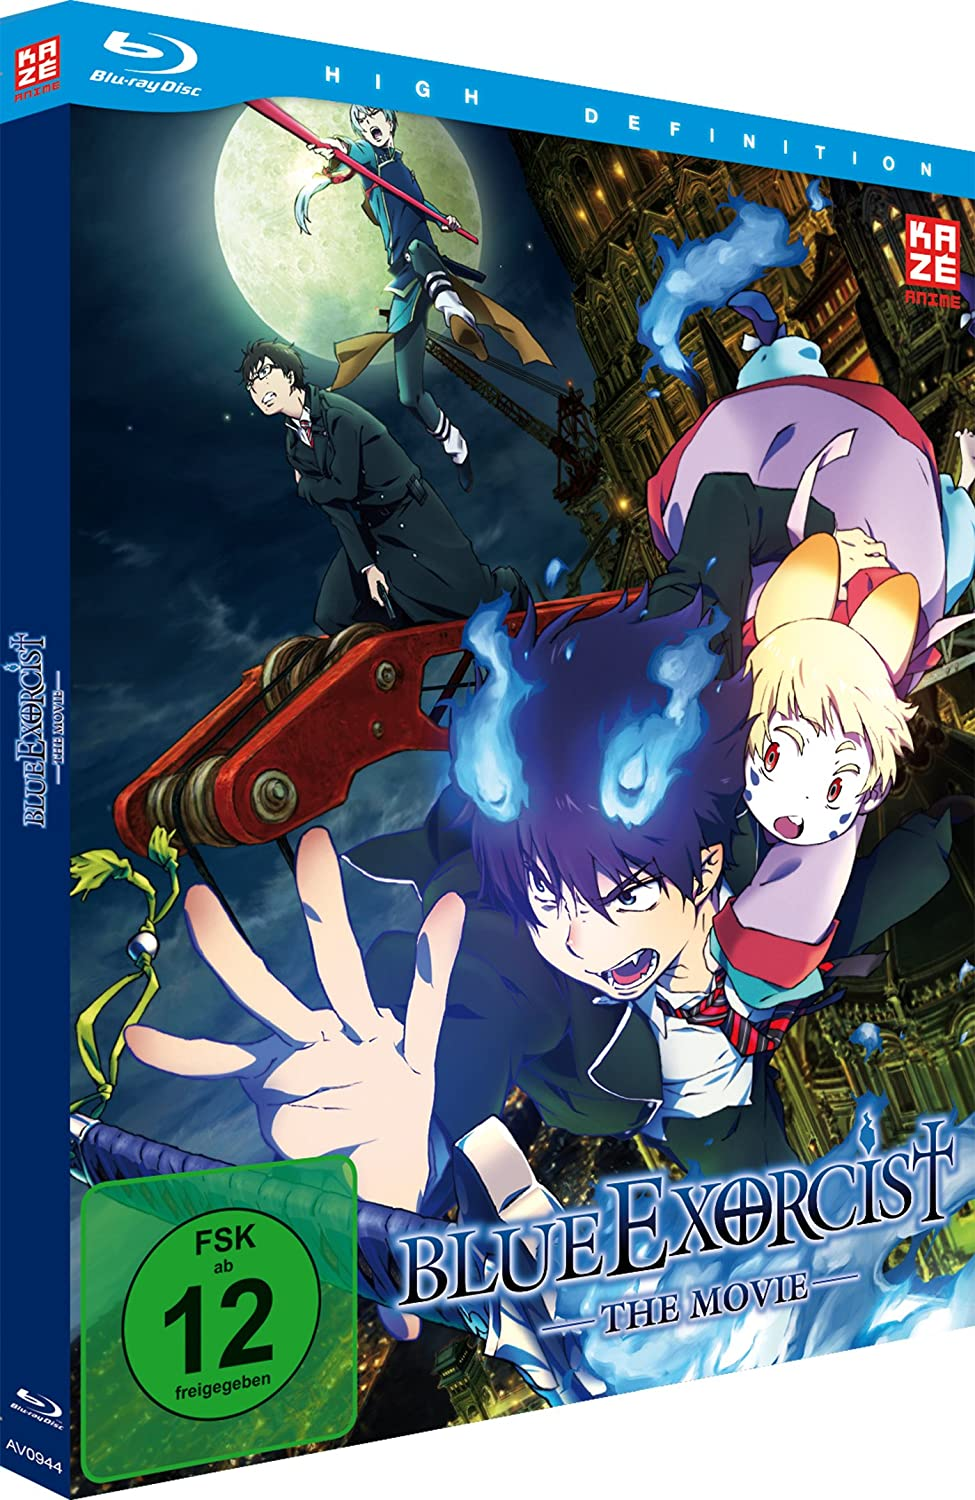 Blue Exorcist - The Movie, Blu-ray